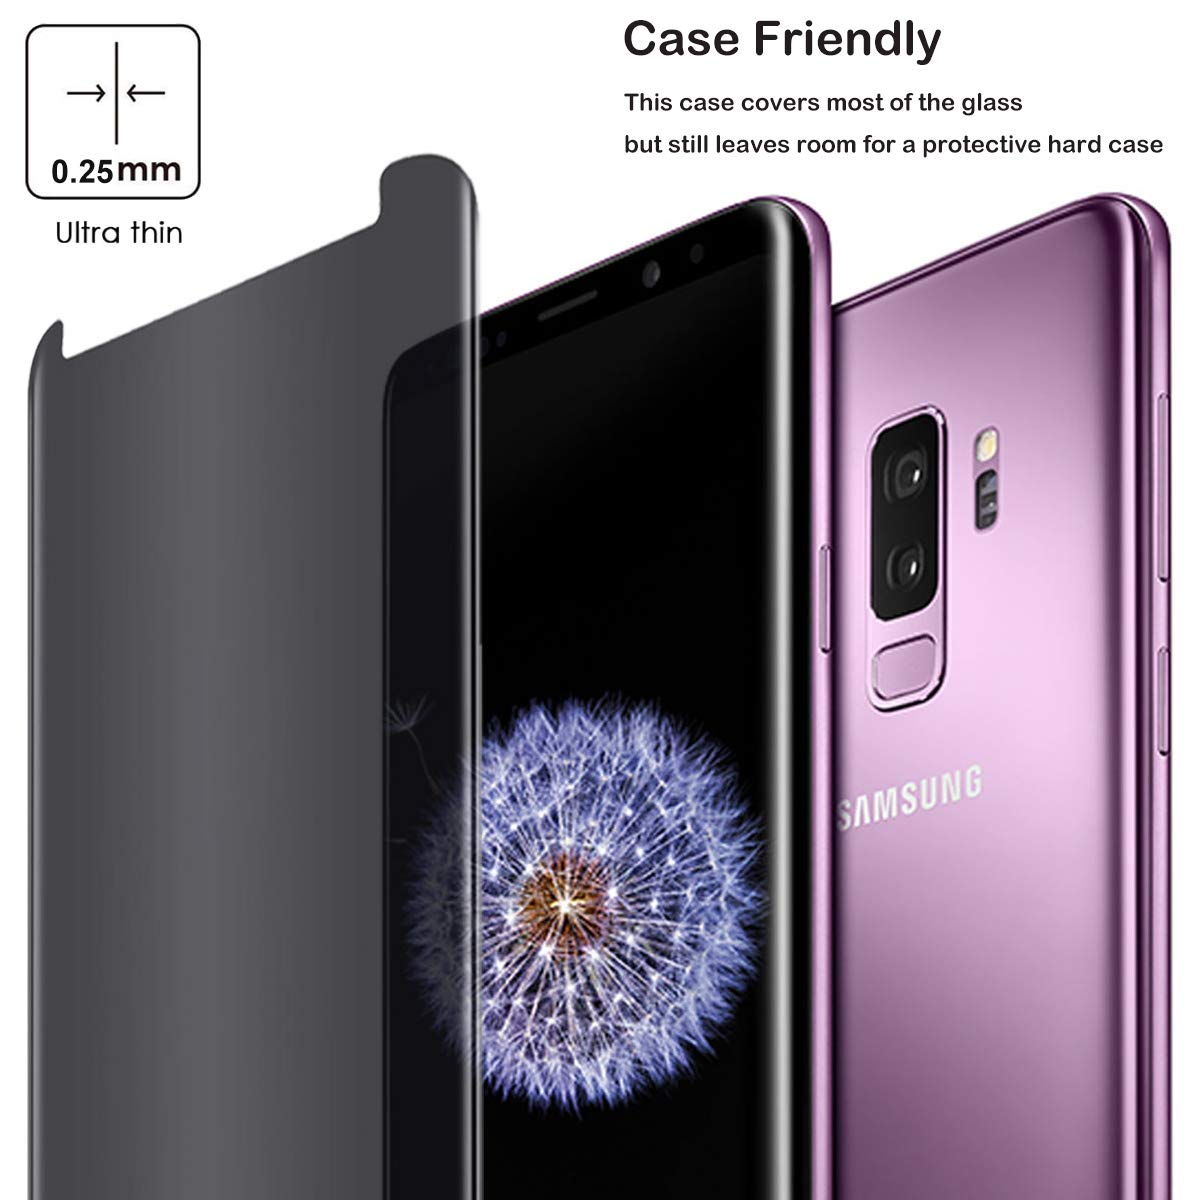 Compatible for Samsung Galaxy S8 Plus (Not for S8) Screen Protector Privacy Anti-Spy, Moresky S8+ Tempered Glass 3D Curved Edge Case Friendly Film (4 pcs) by Moresky (Image #5)